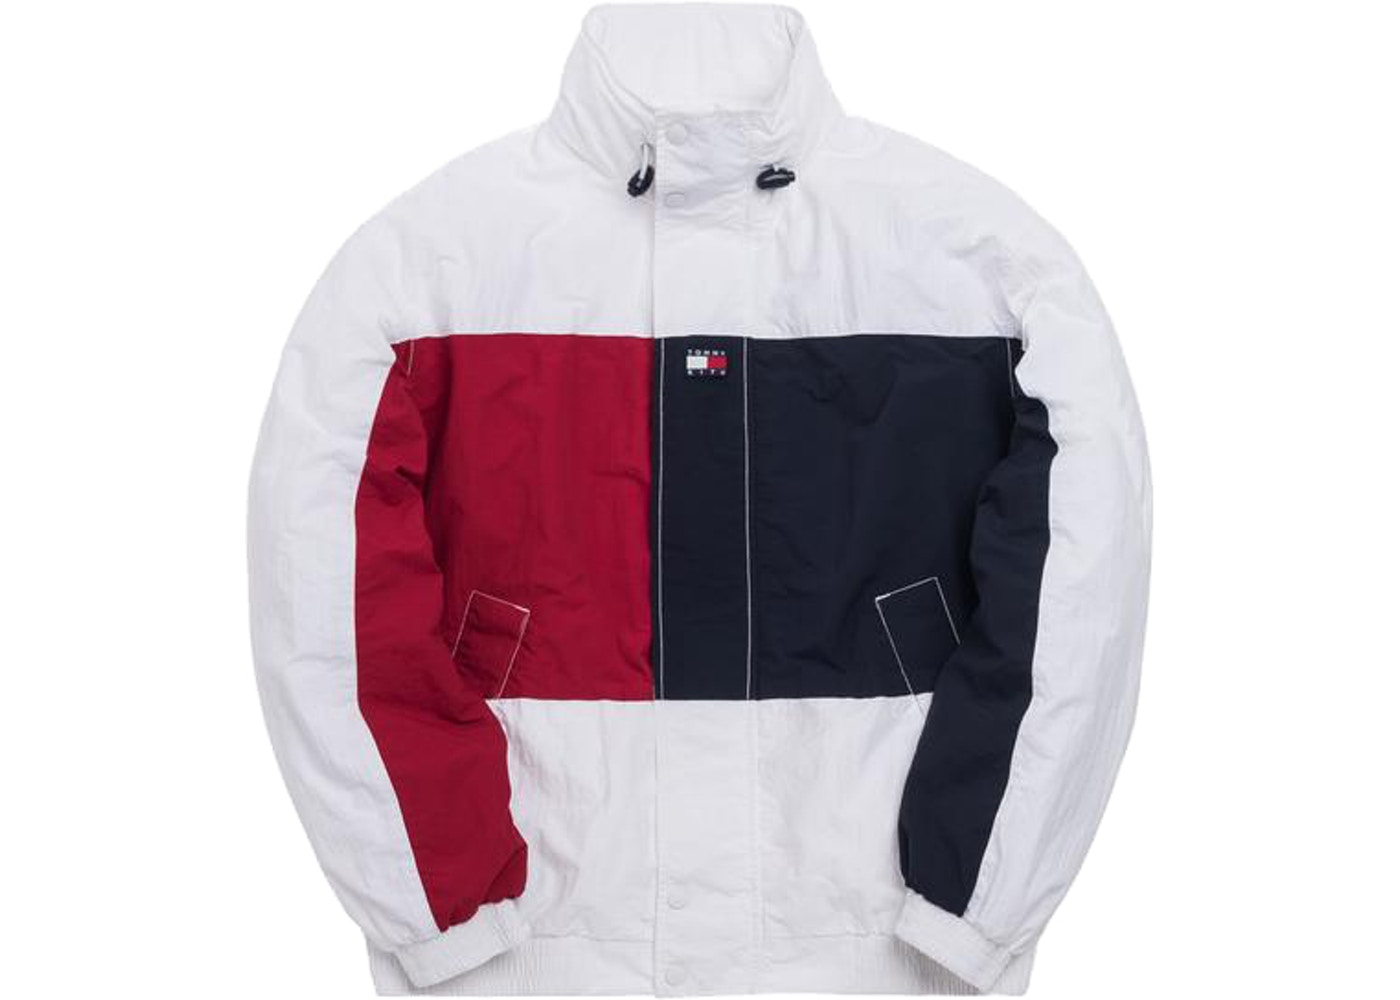 a467bdc7f Kith Jackets - Buy & Sell Streetwear